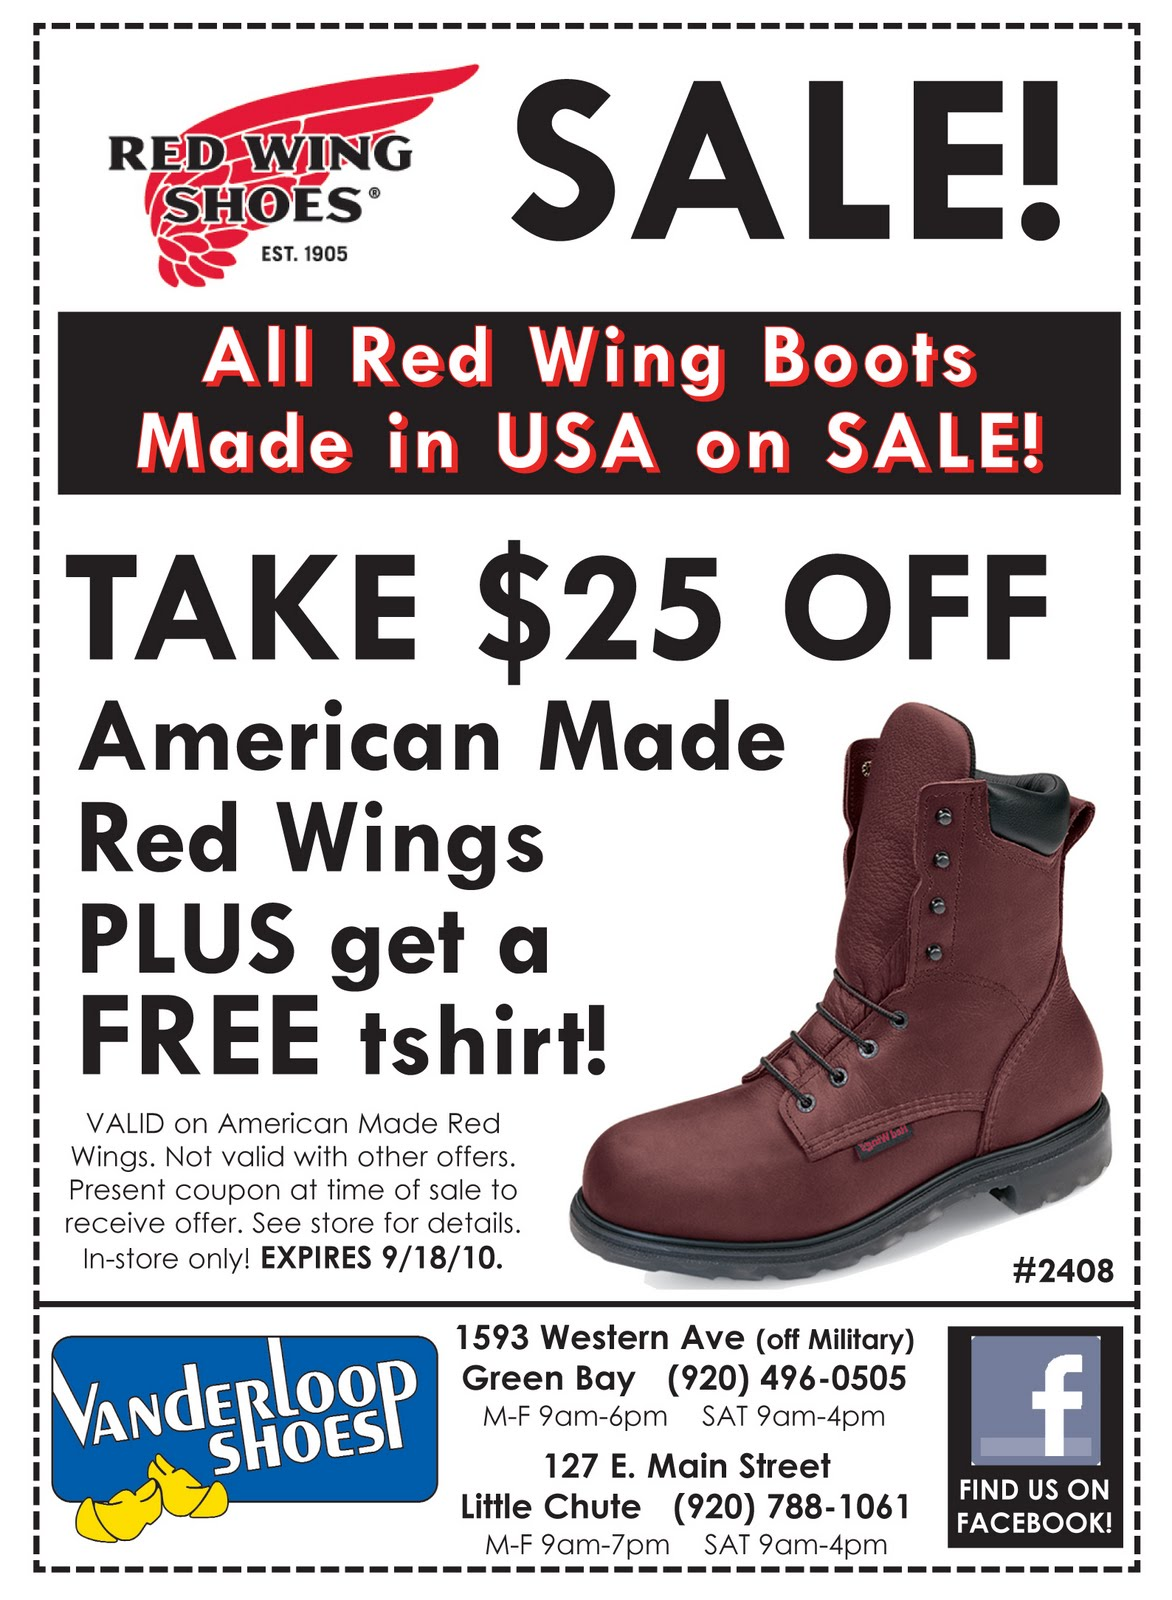 Red wing shoes discount coupons